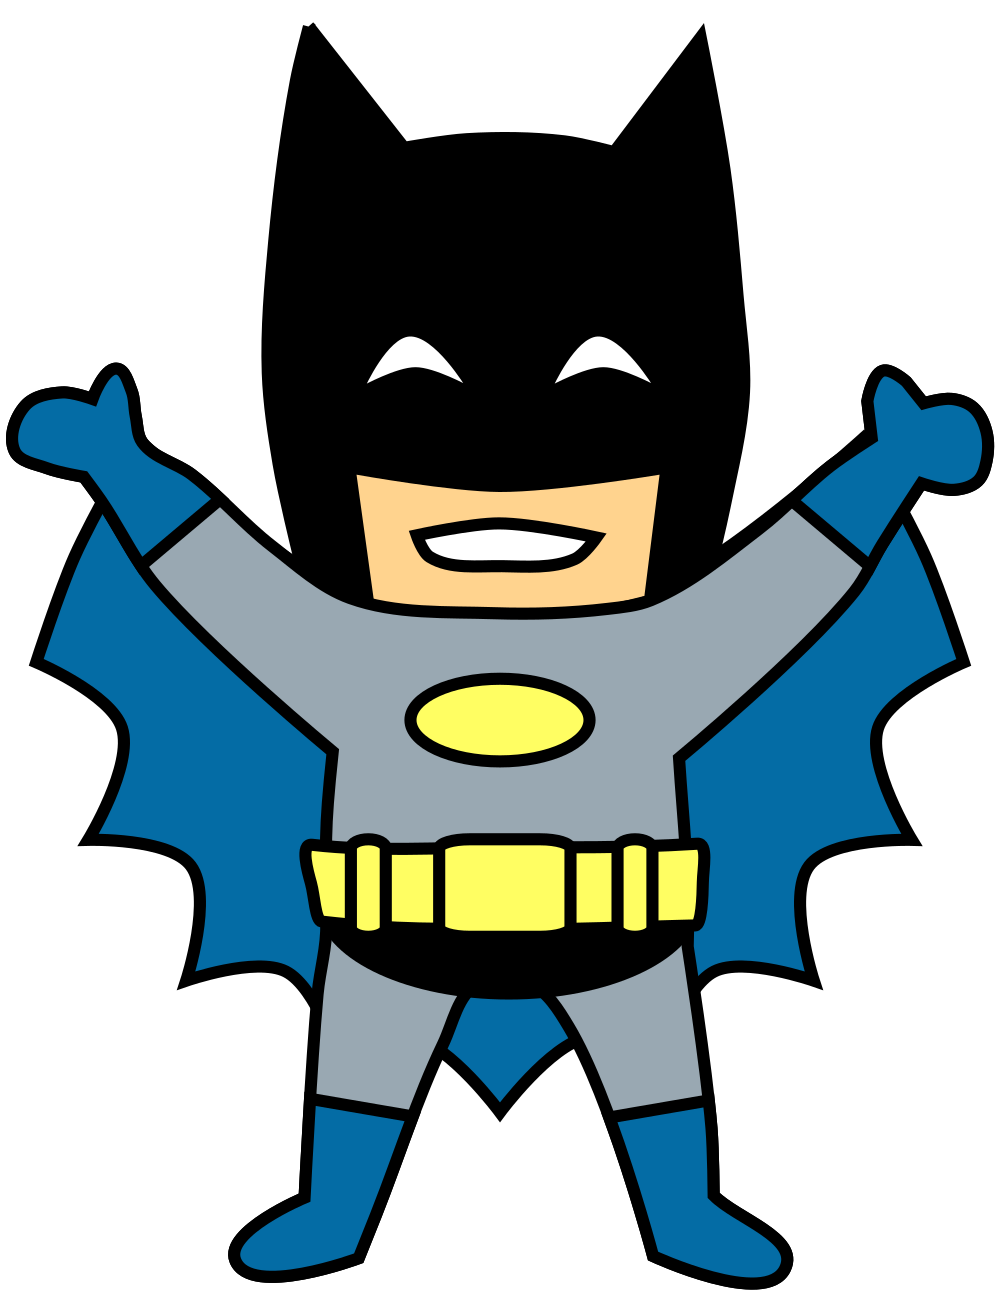 Clipart svg clipart black and white download File:Batman Clipart.svg - Wikimedia Commons clipart black and white download